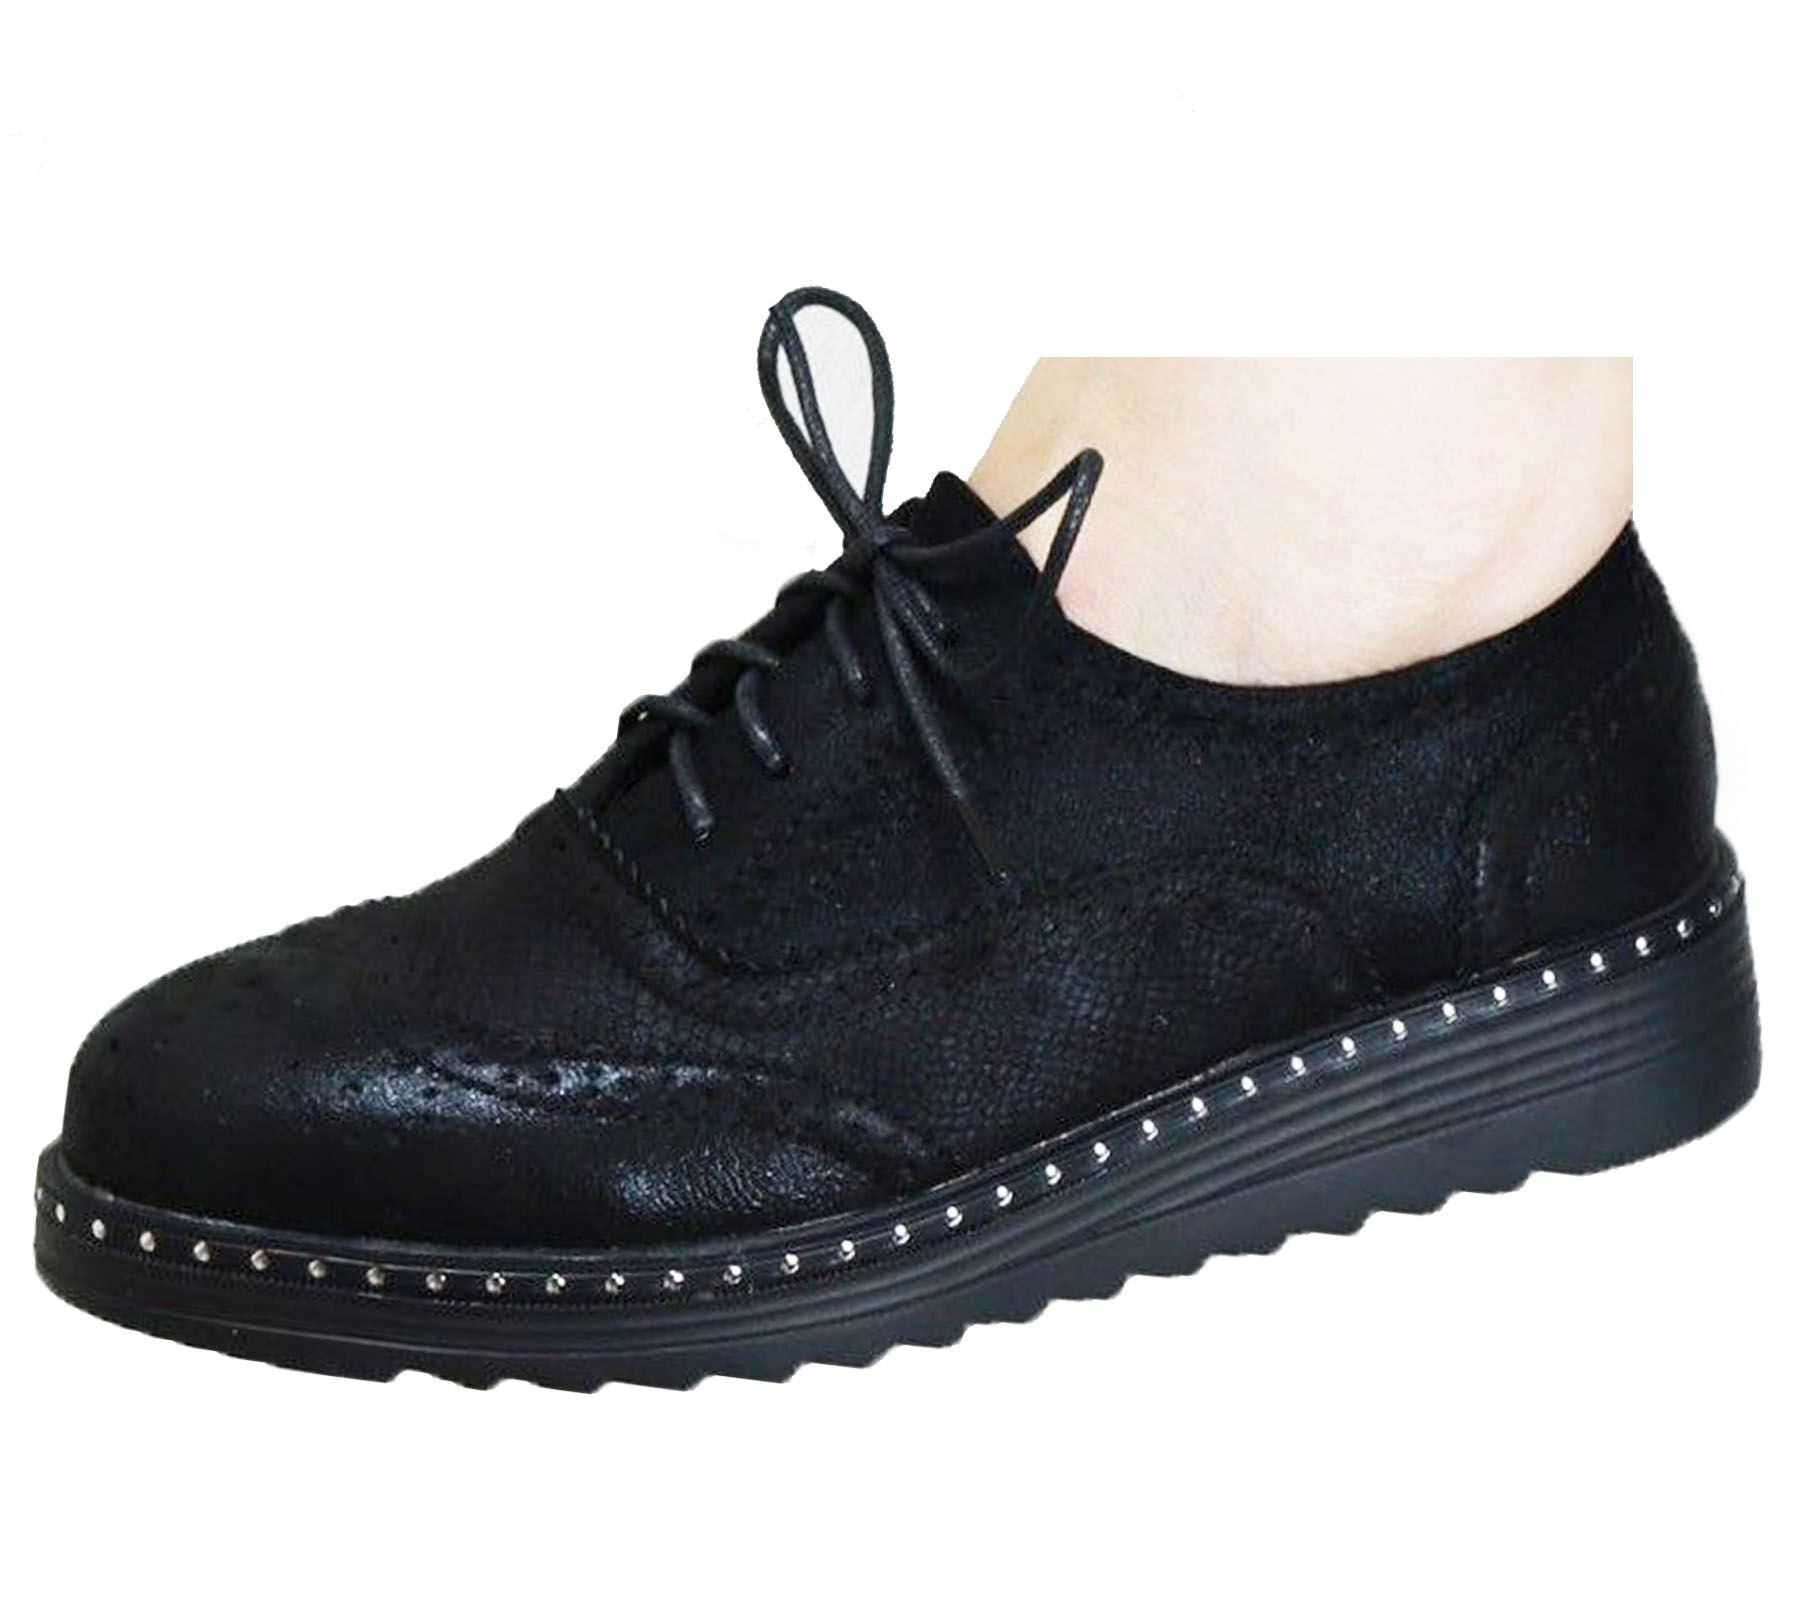 Ladies-Brogue-Lace-Up-Shoes-Womens-Oxford-Smart-Office-Loafers-Shoes miniatura 5